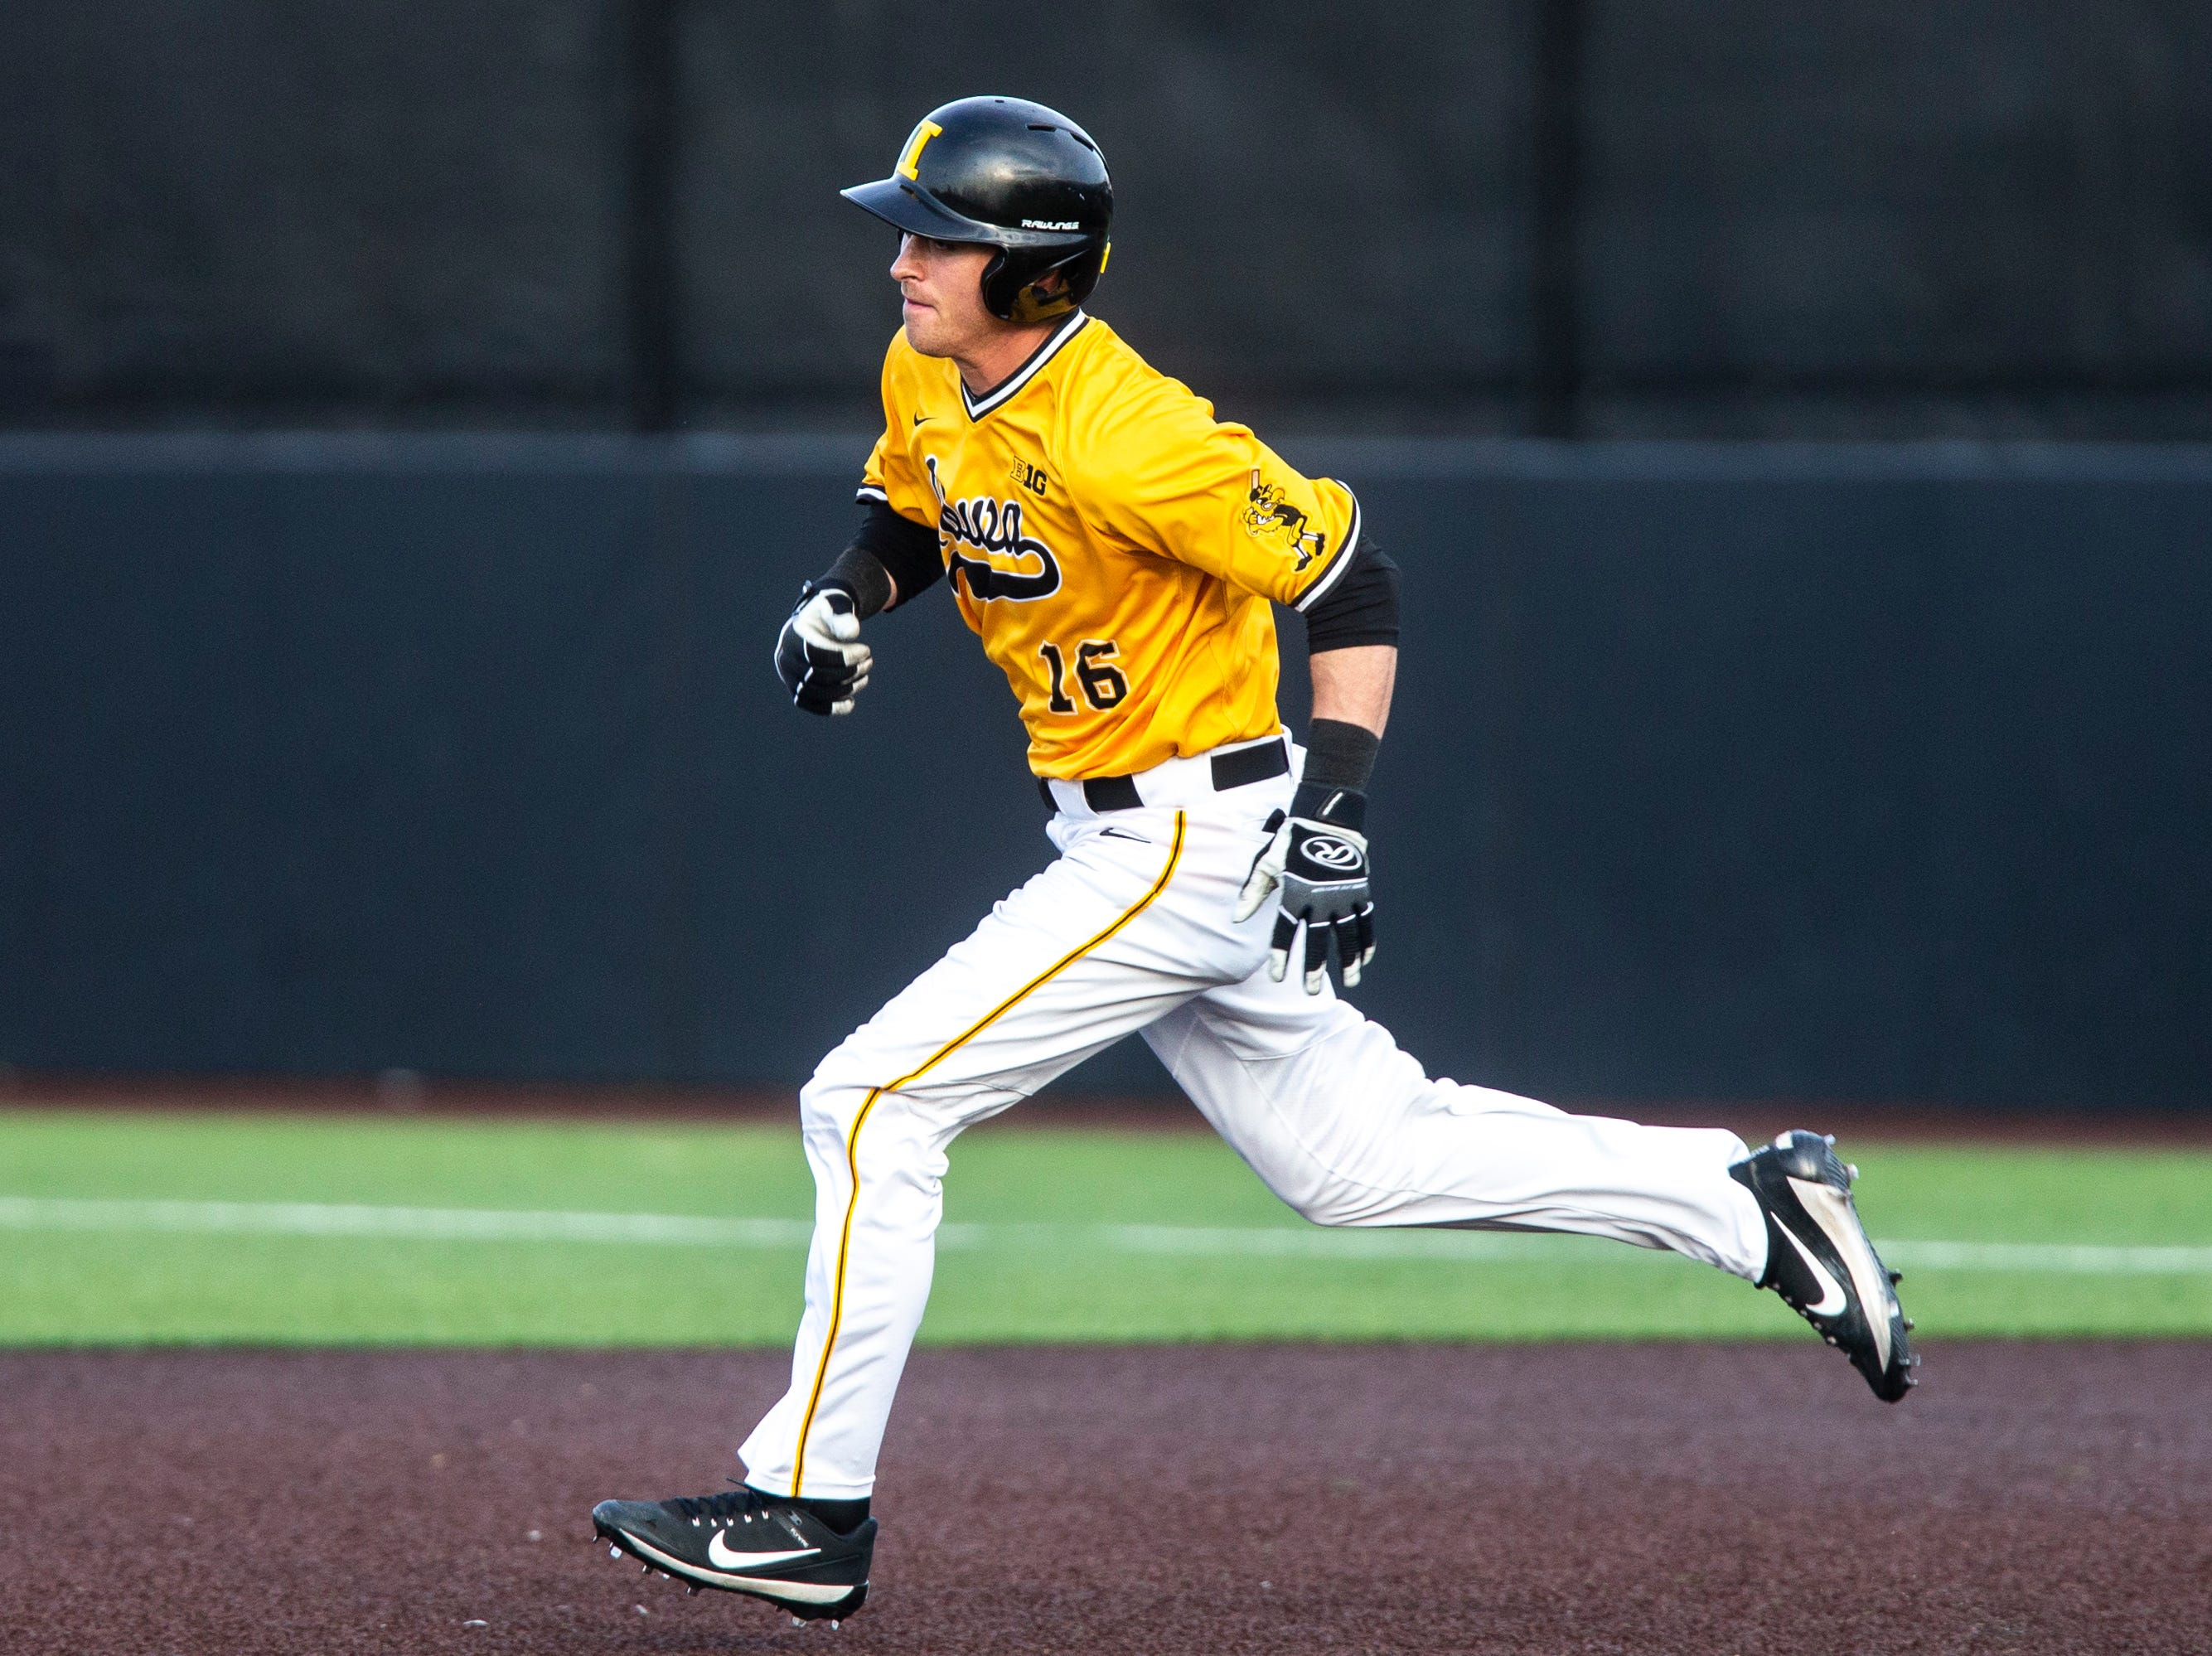 Iowa's Tanner Wetrich (16) steals to second during a NCAA Big Ten Conference baseball game on Saturday, April 6, 2019, at Duane Banks Field in Iowa City, Iowa.